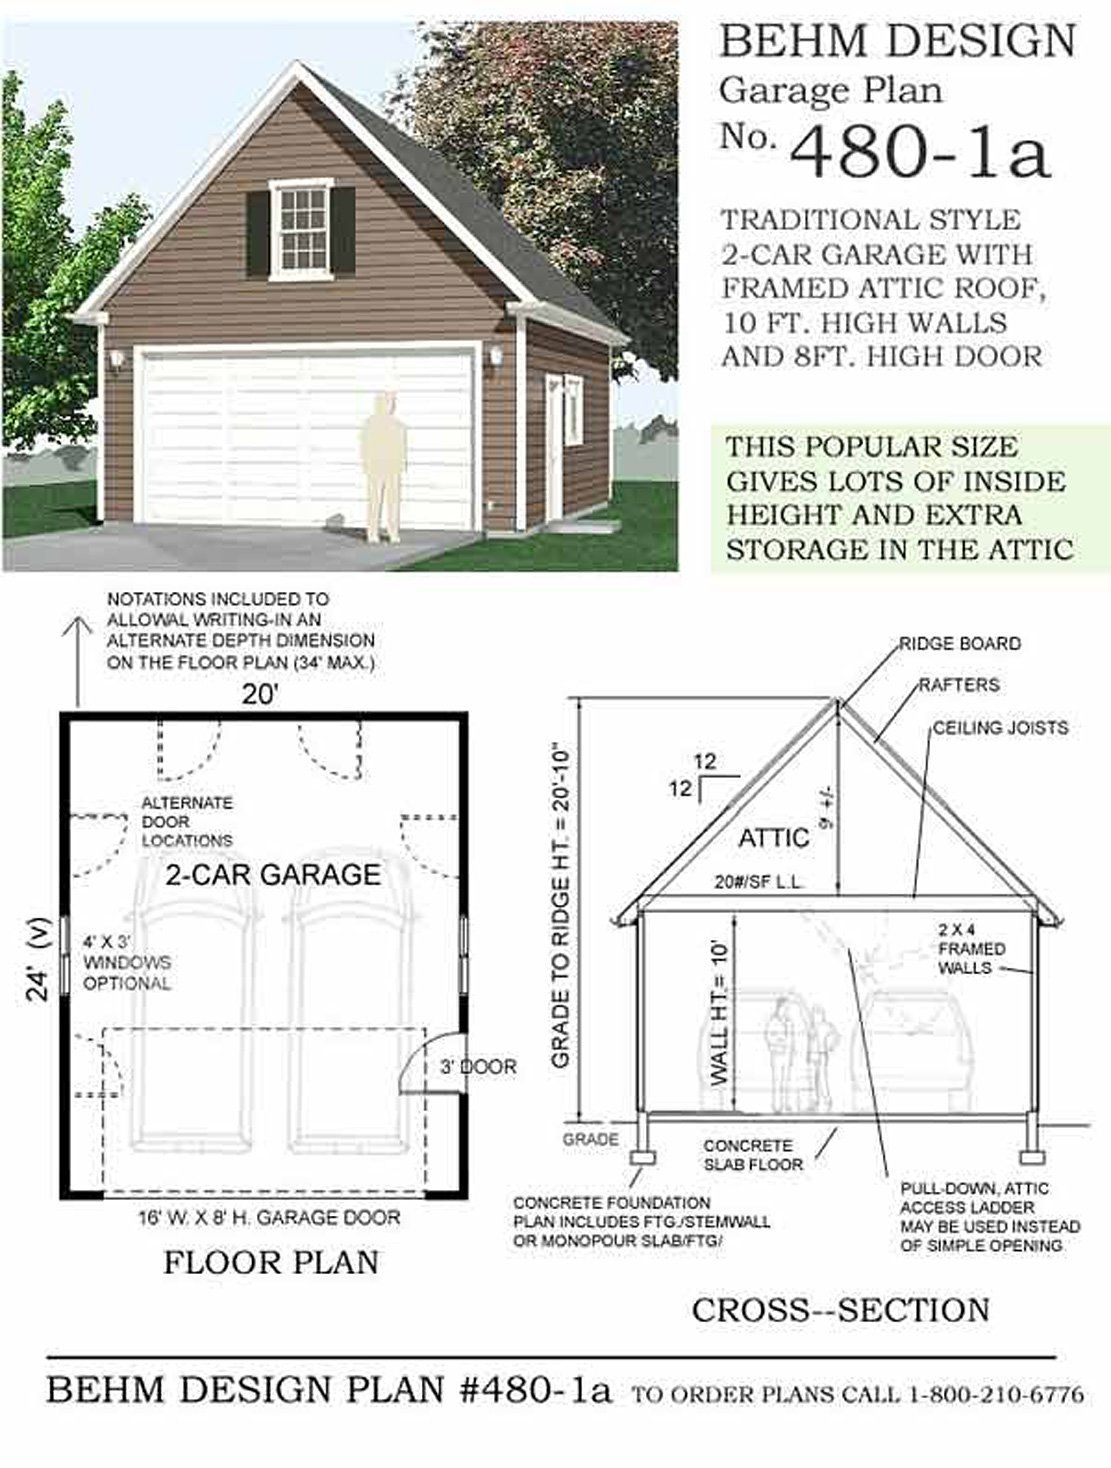 Garage Plans 2 Car Compact Steep Roof Garage Plan With Attic 480 1a 20 X 24 Two Car By Behm Design Garage Plan Garage Plans Garage Plans With Loft